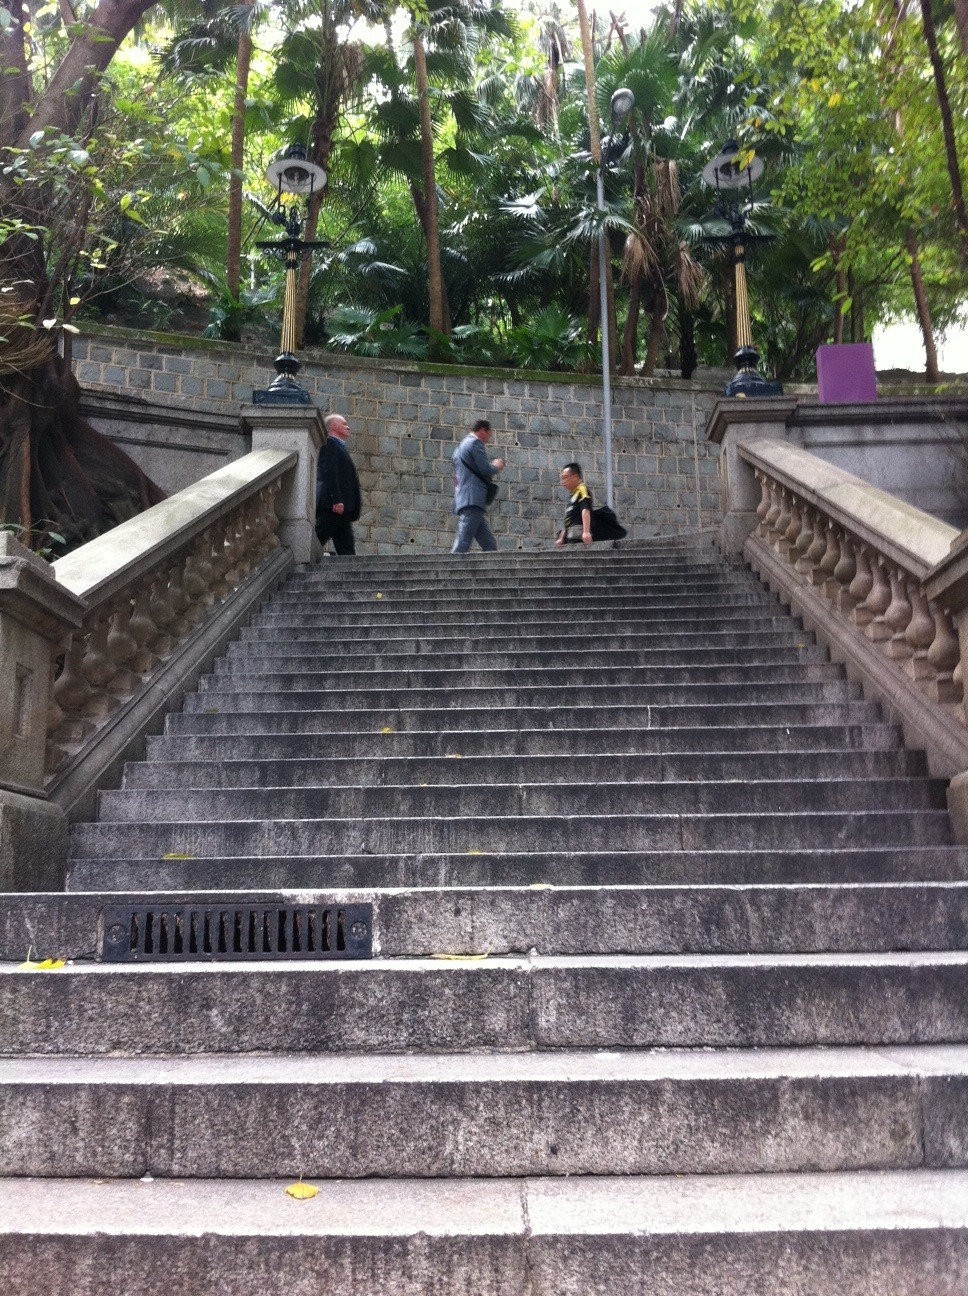 Stairs leading down to the business district on Hong Kong Island